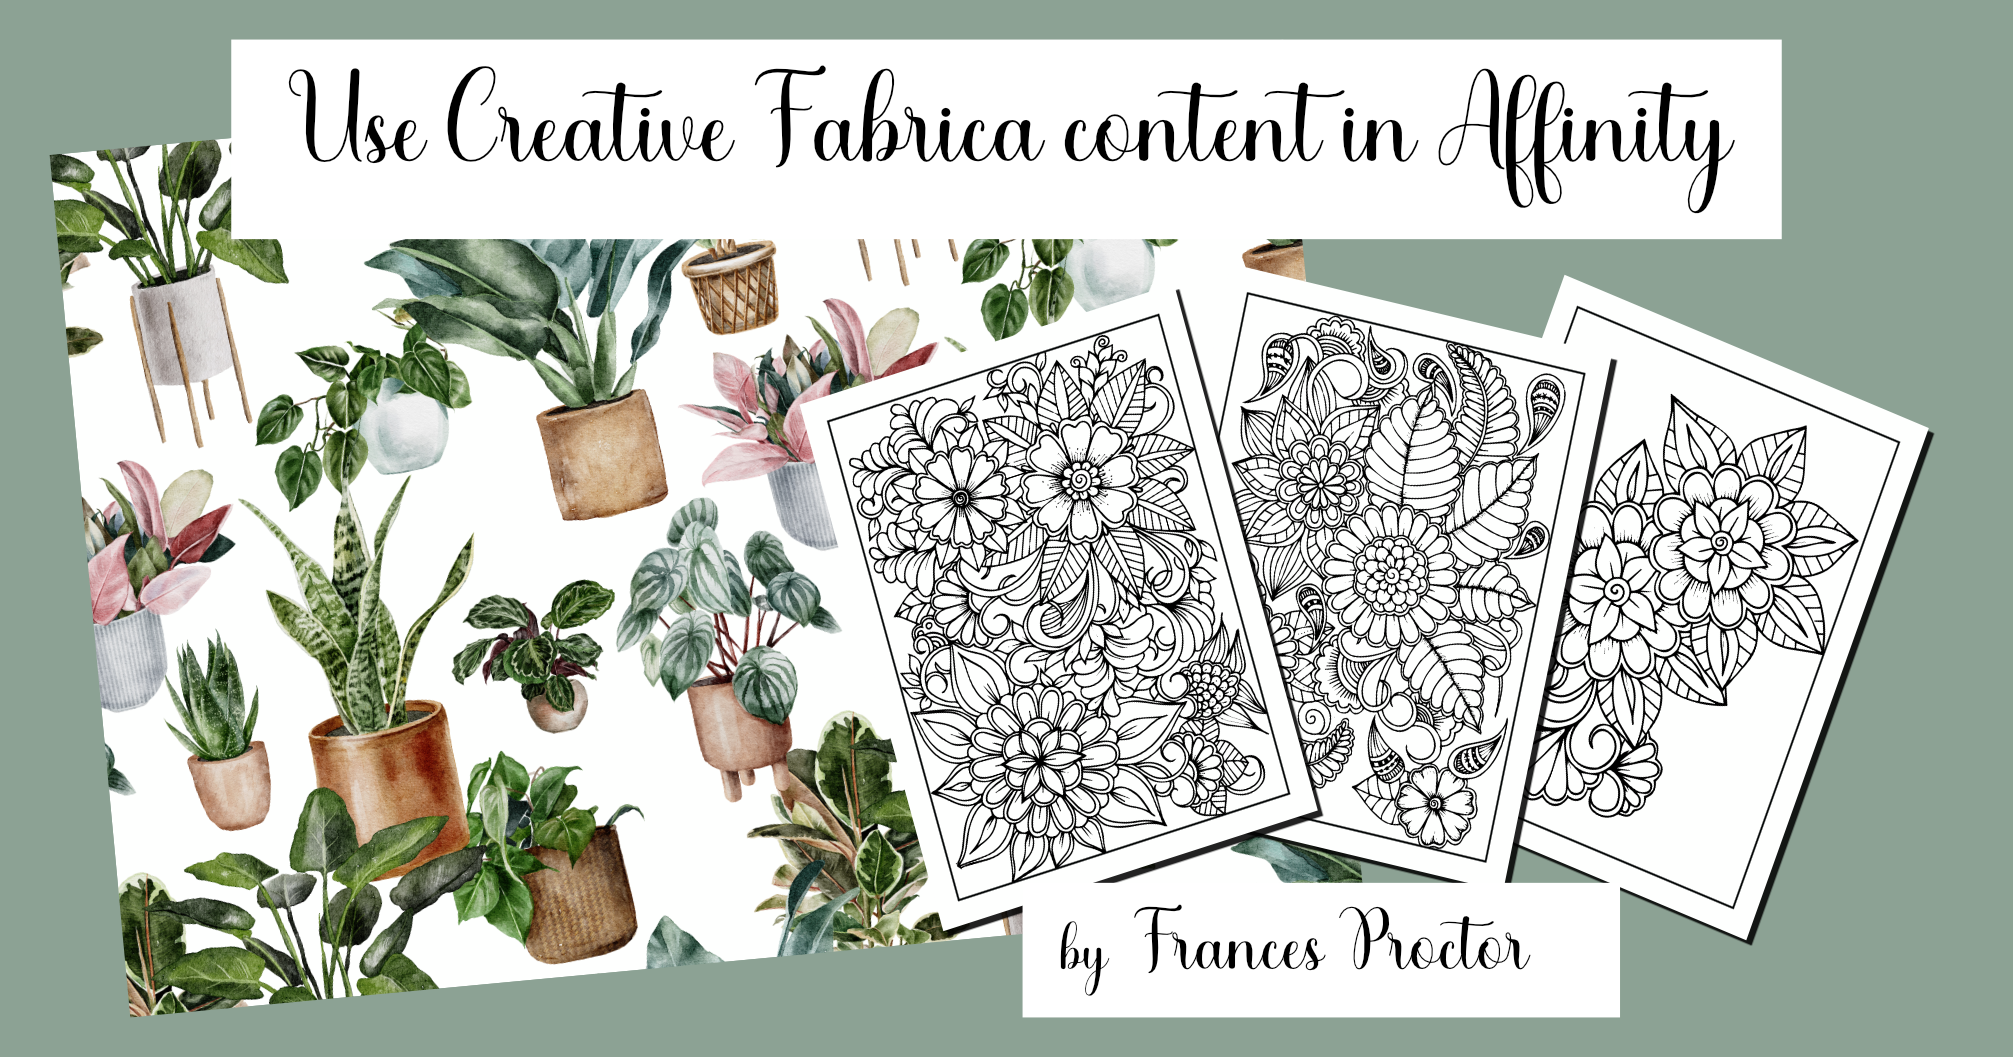 Using Creative Fabrica Items in Affinity Programs